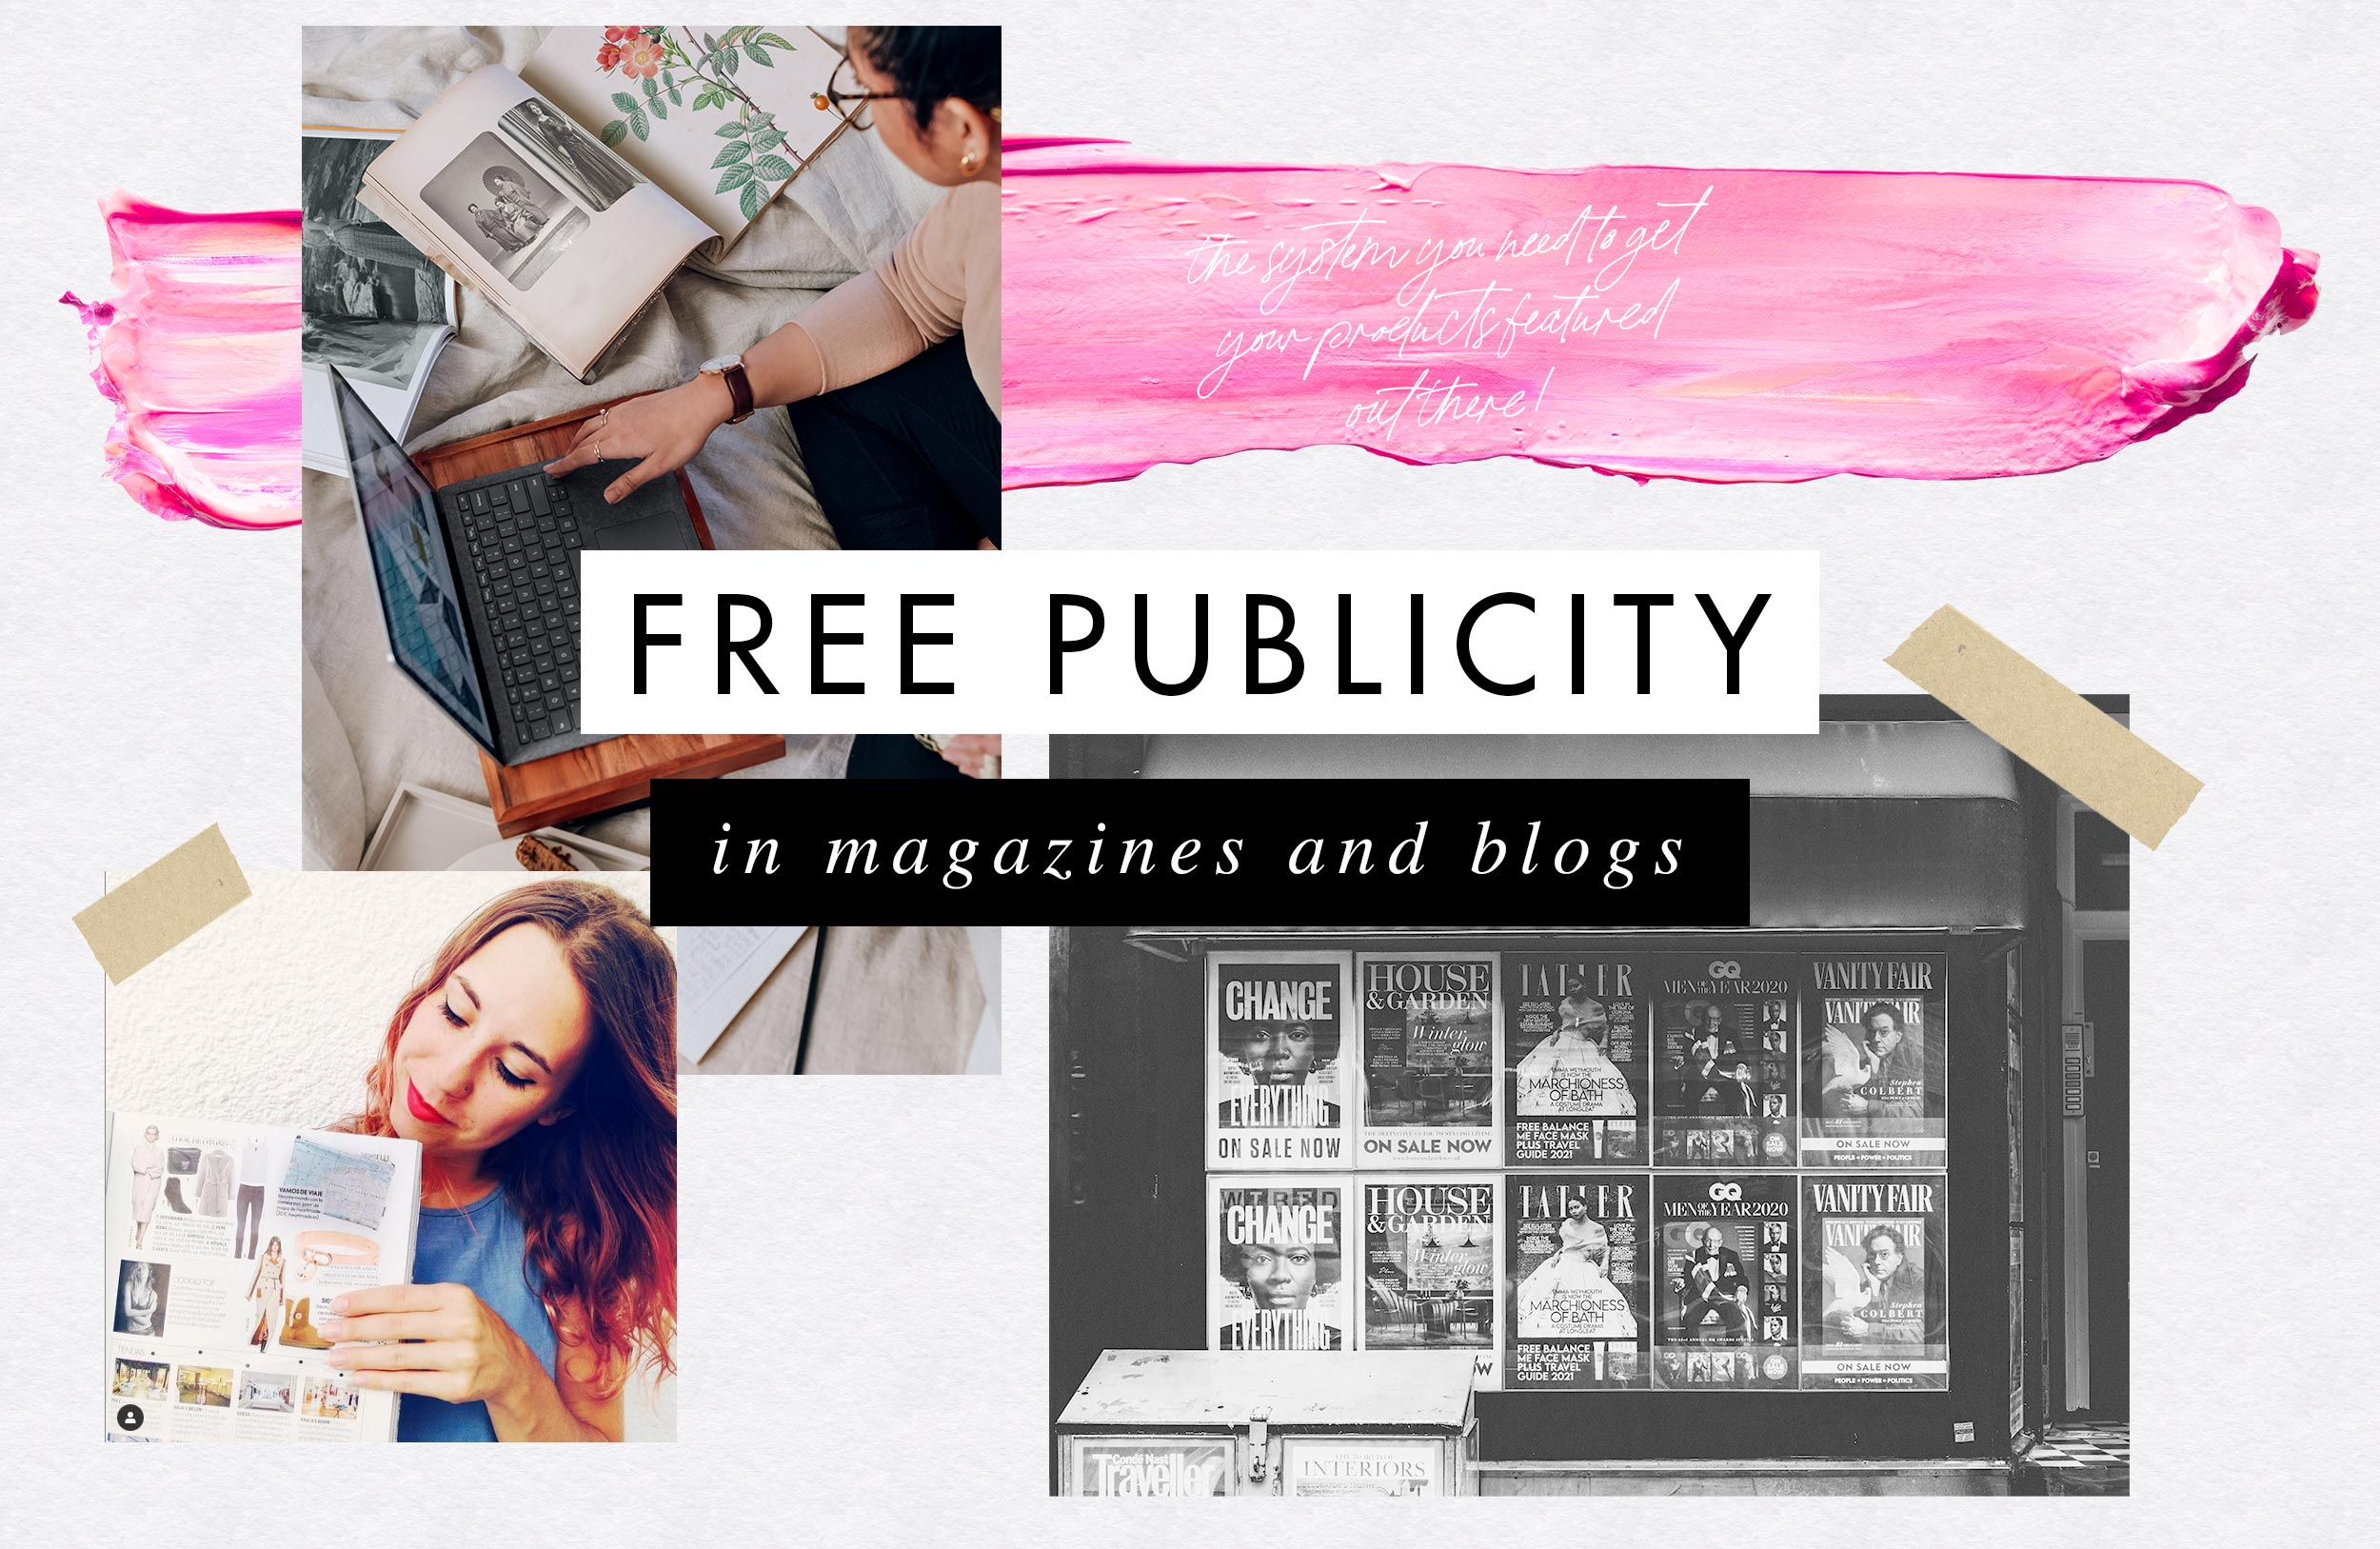 Learn how to get free publicity for your products on magazines and blogs